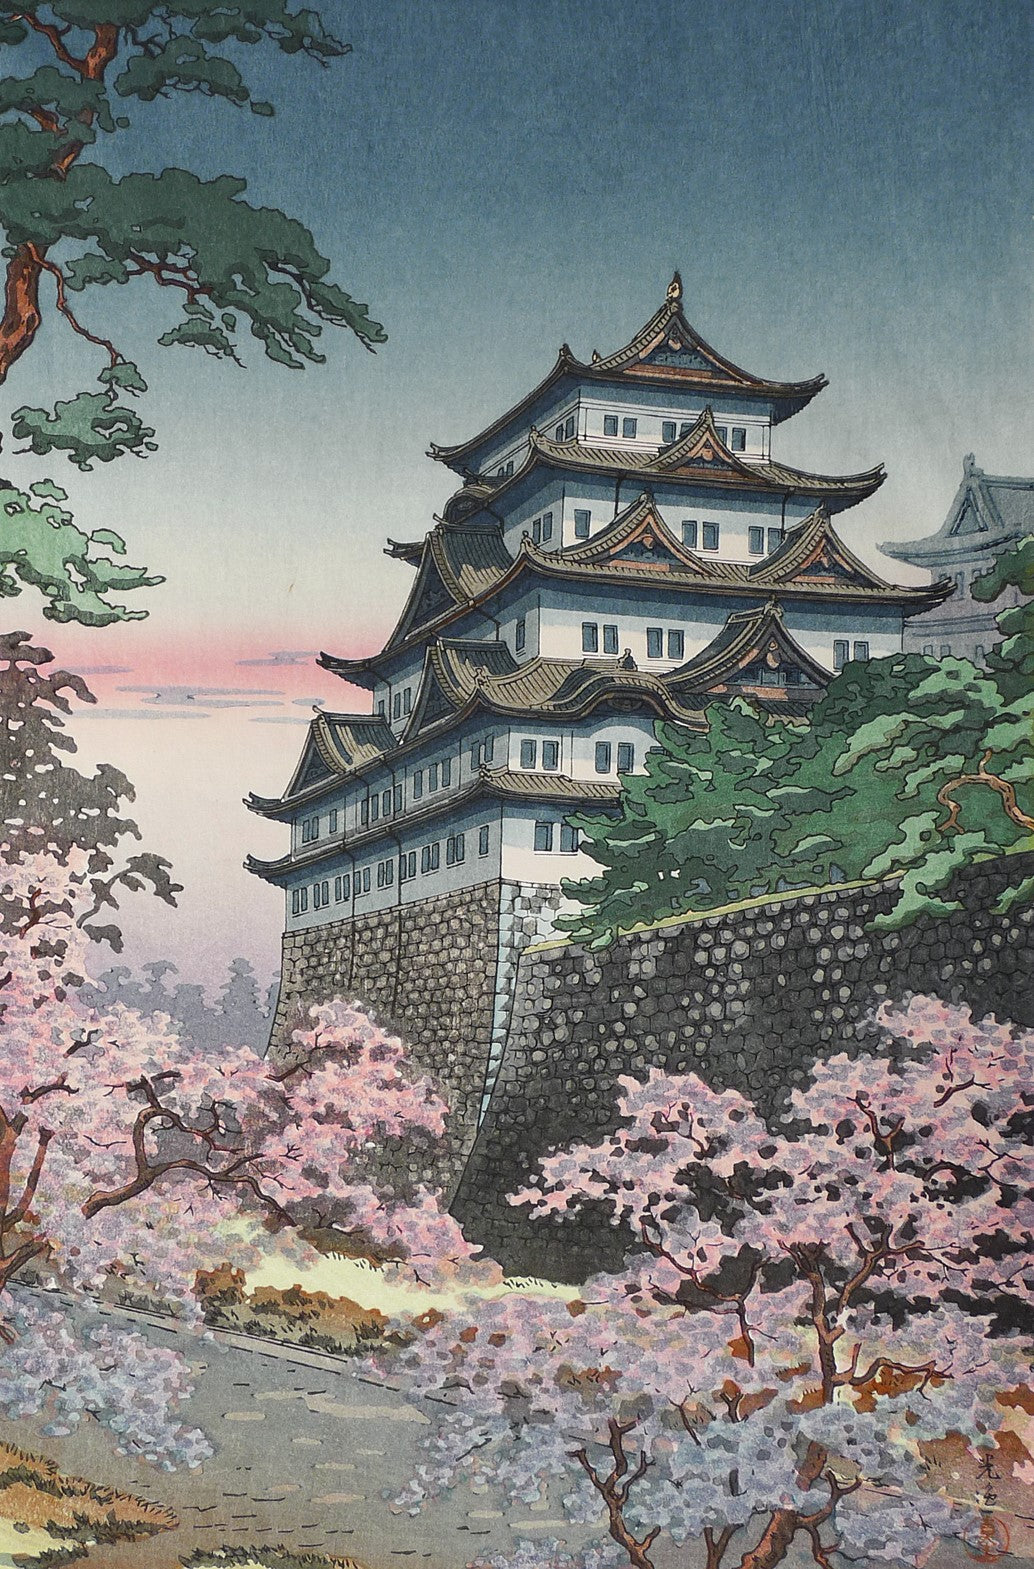 Delving into the Secrets of Japanese Castles with Cherry Blossoms at Nagoya Castle (1937) by Tsuchiya Koitsu